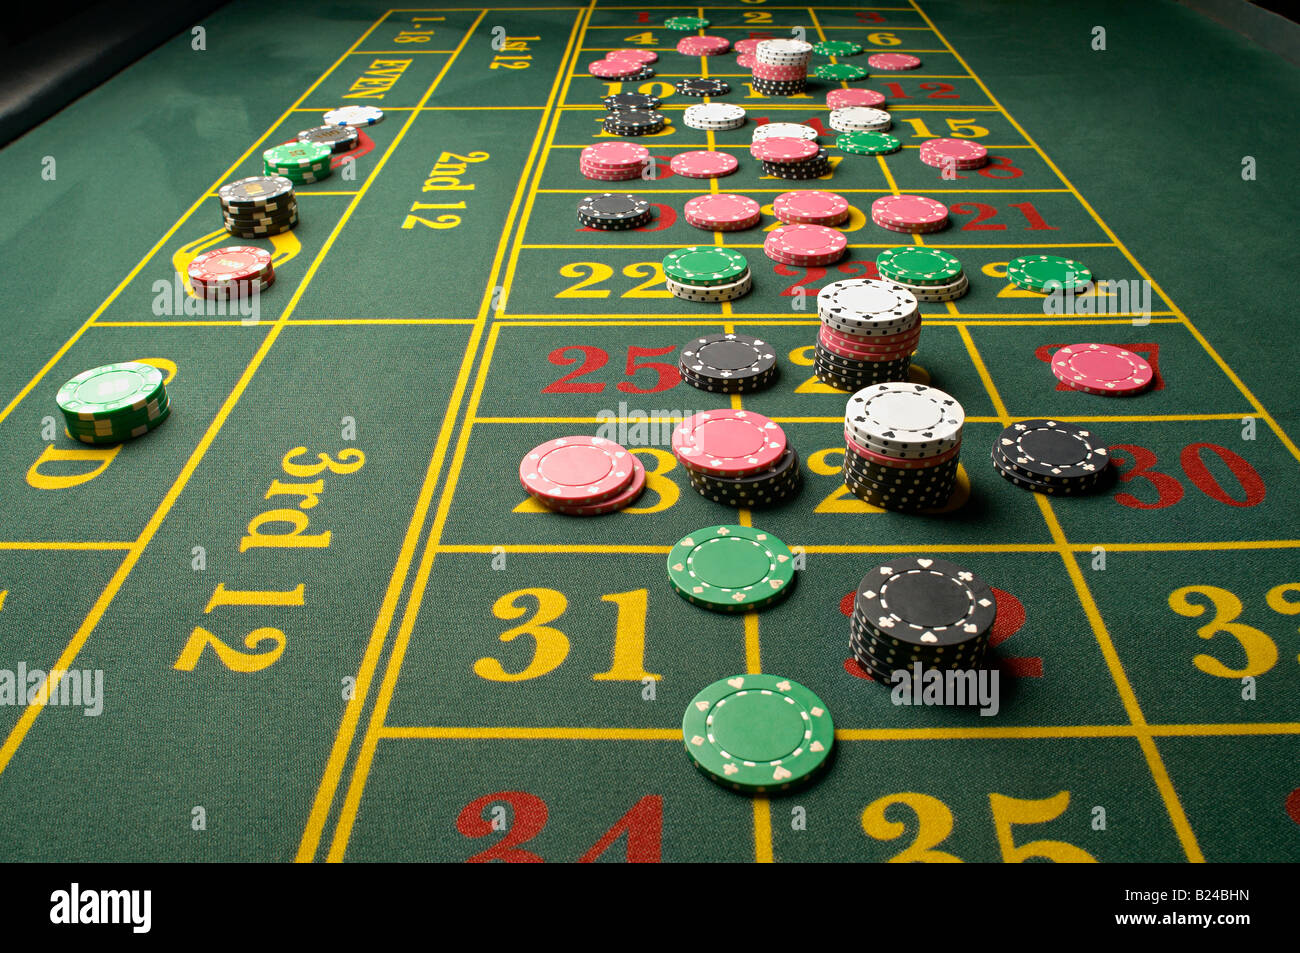 Gambling chips on a roulette table - Stock Image